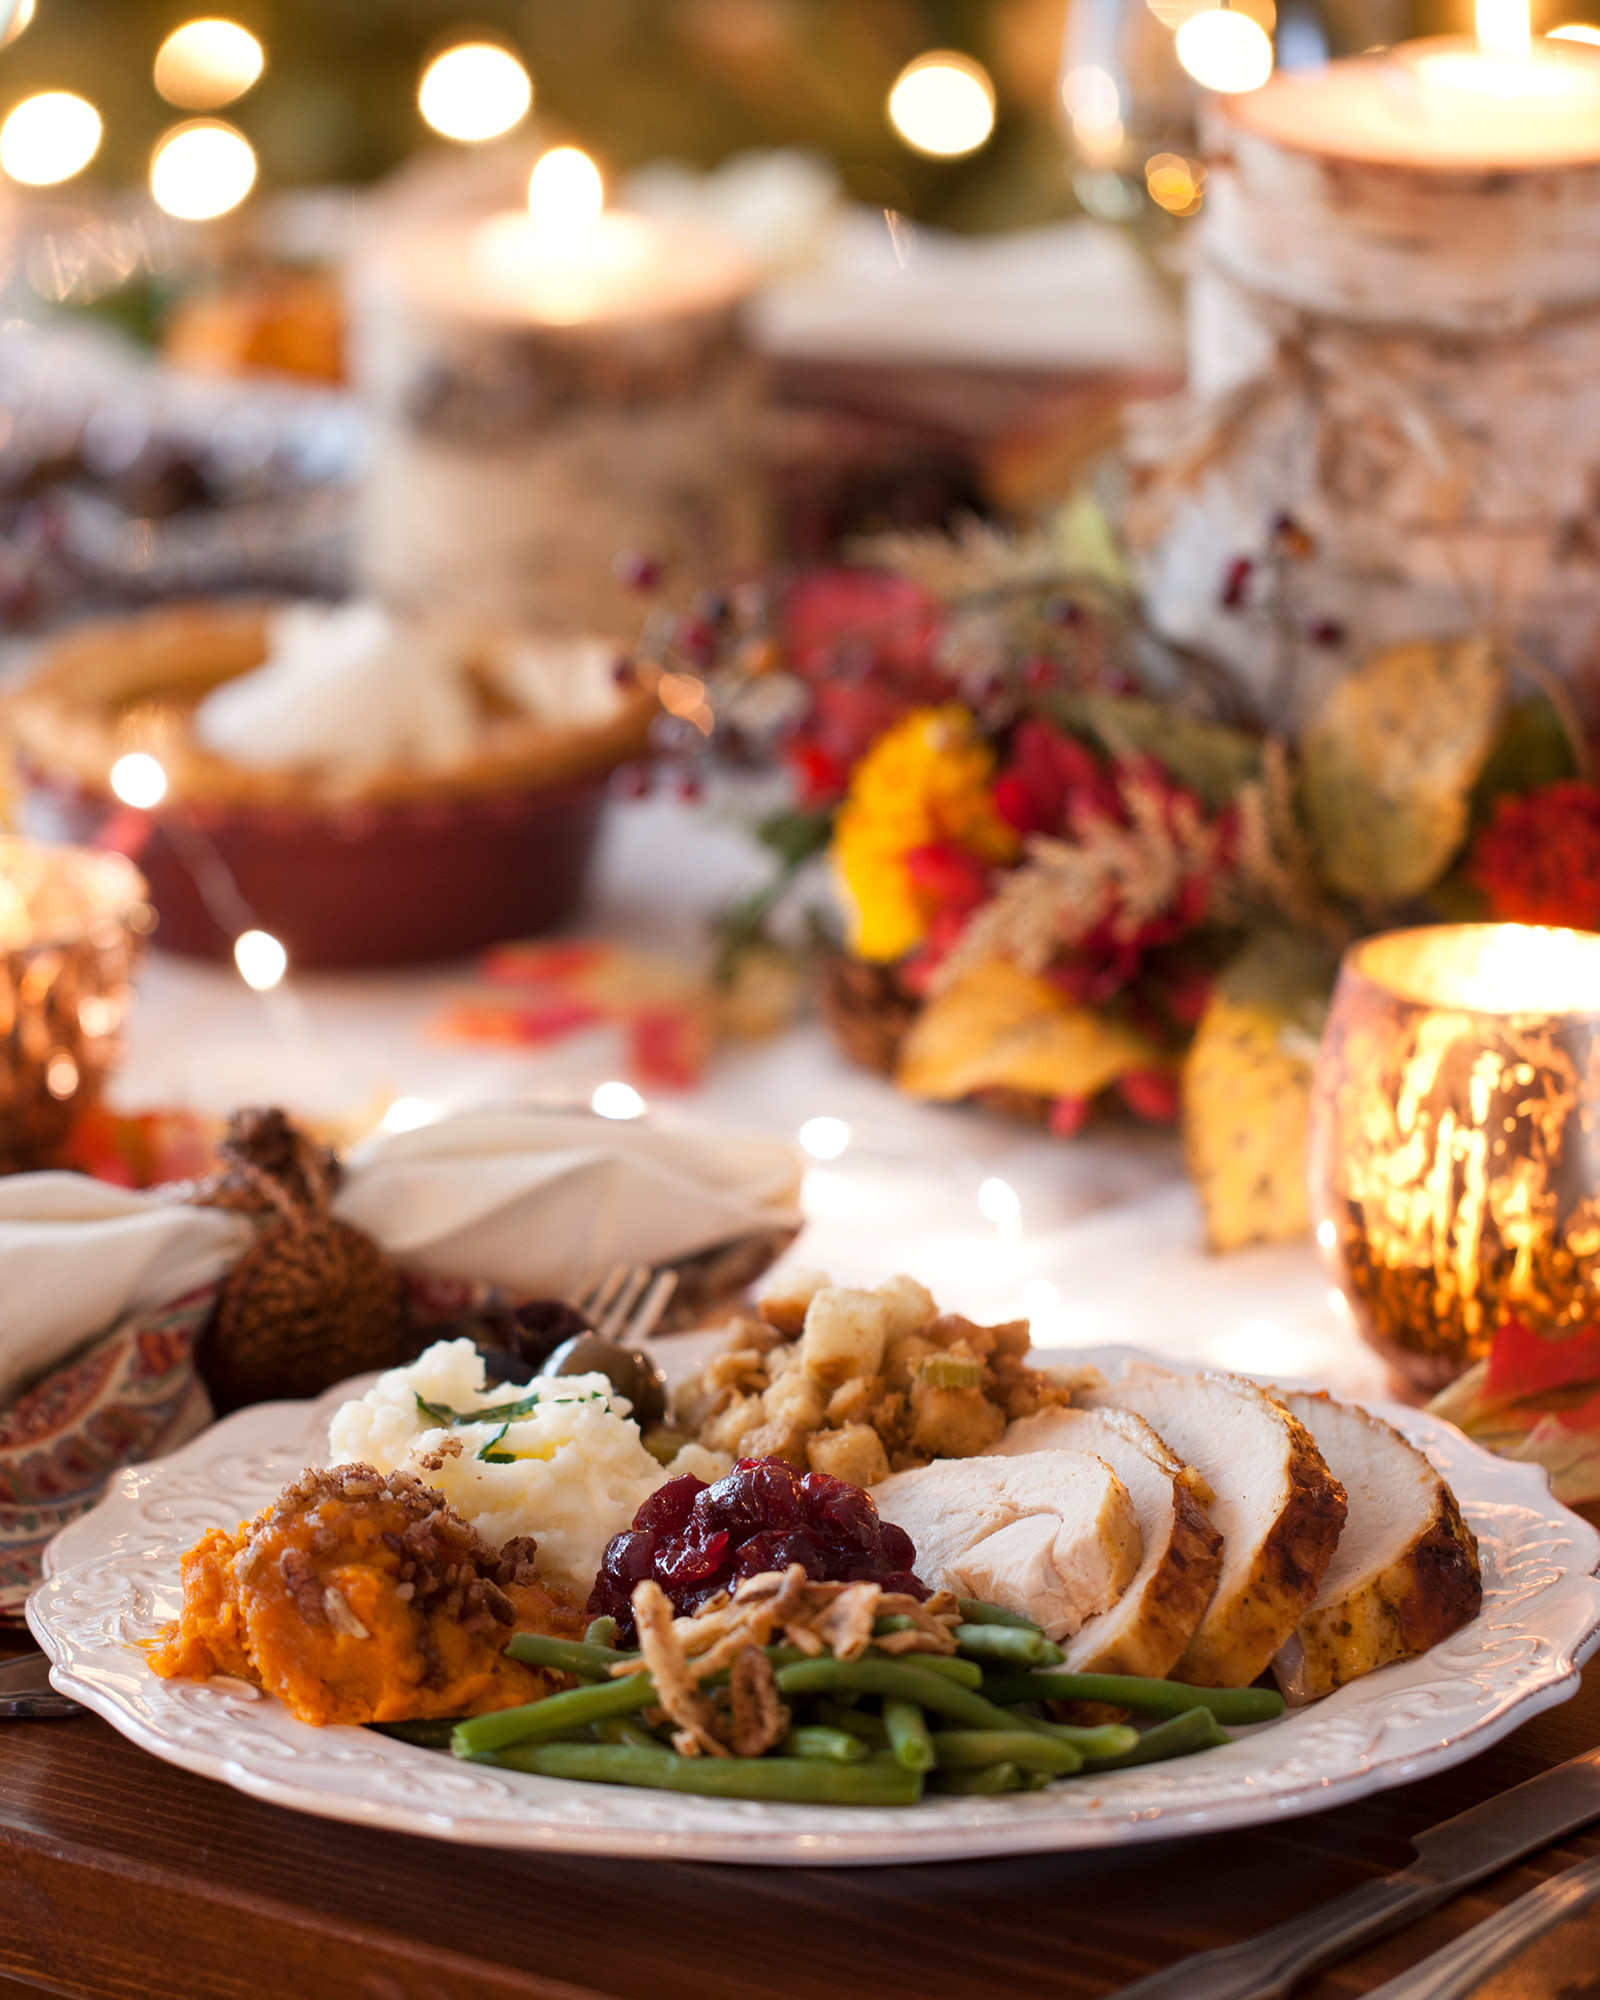 Thanksgiving Meal at the Table